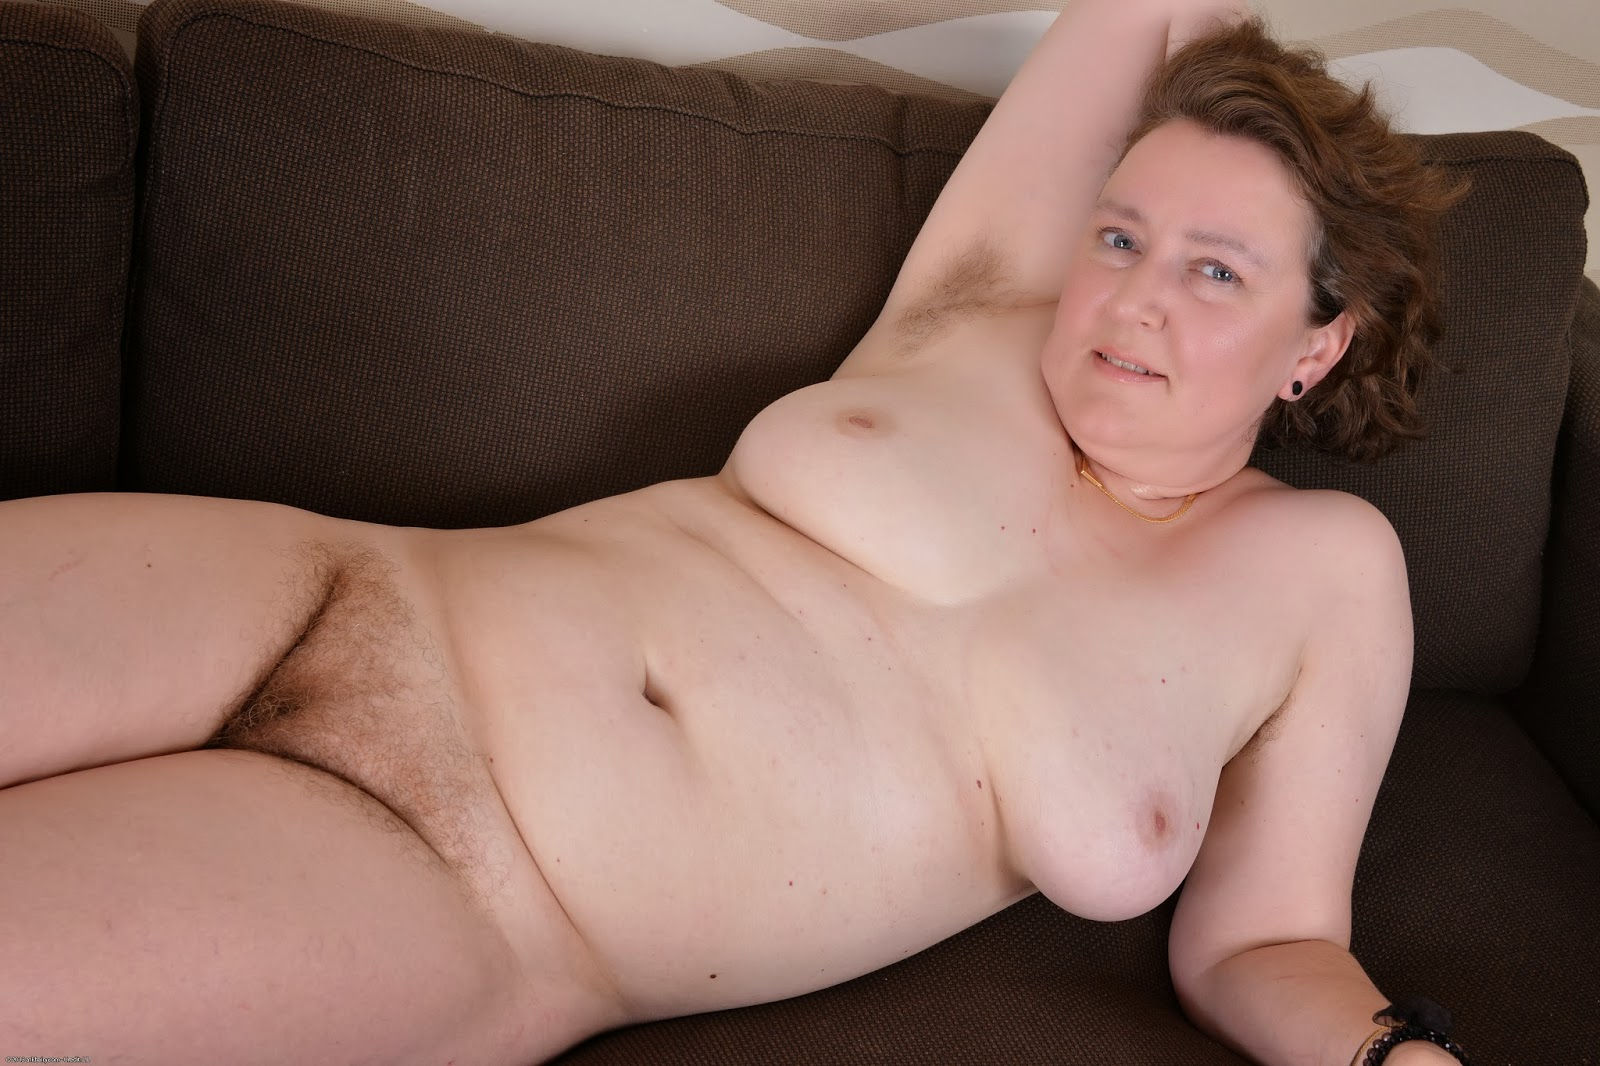 Rough amateur interracial wife